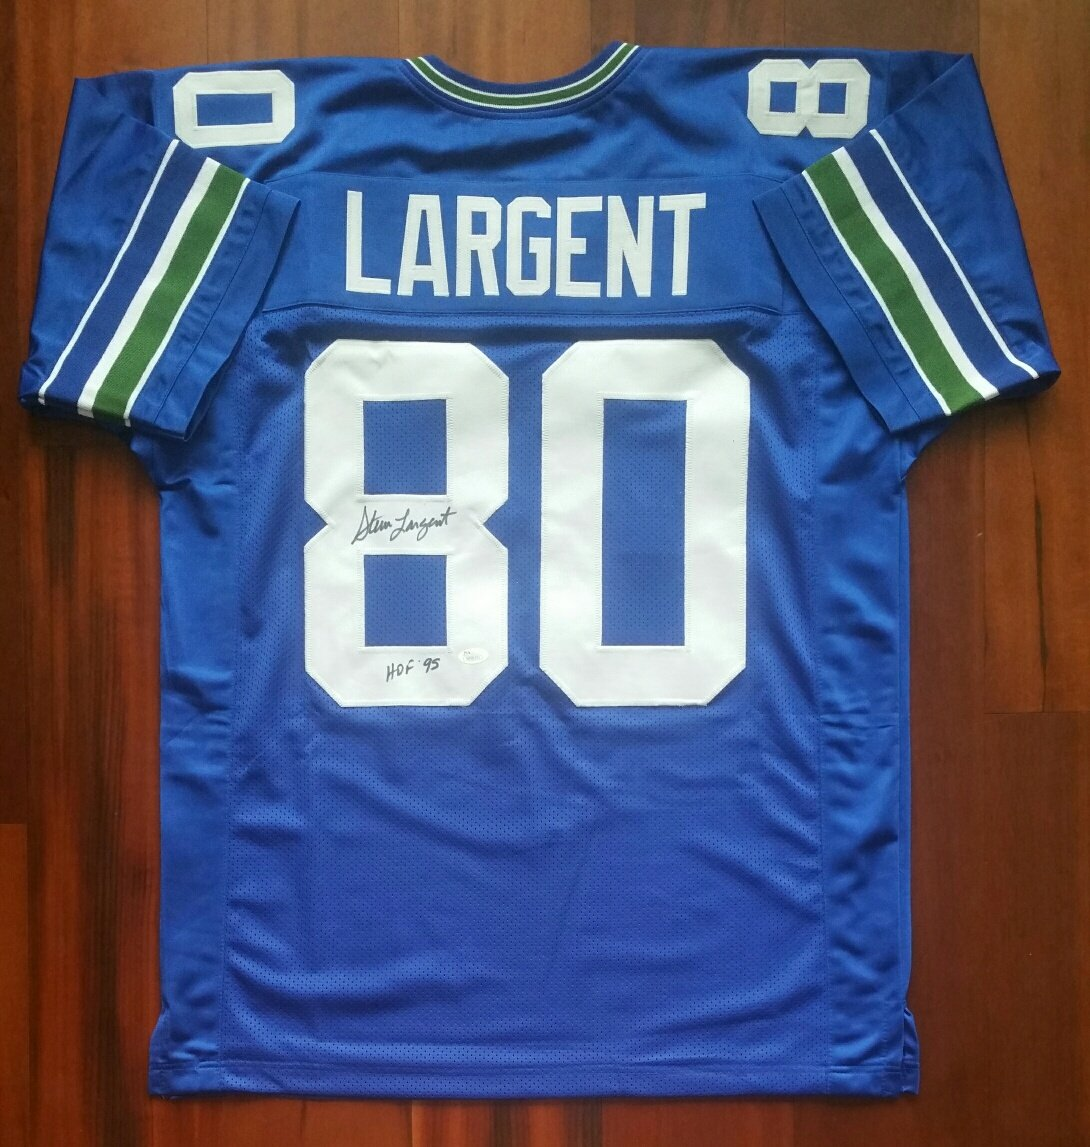 666ff30fc Steve Largent Signed Autographed Jersey Seattle Seahawks JSA at Amazon s  Sports Collectibles Store